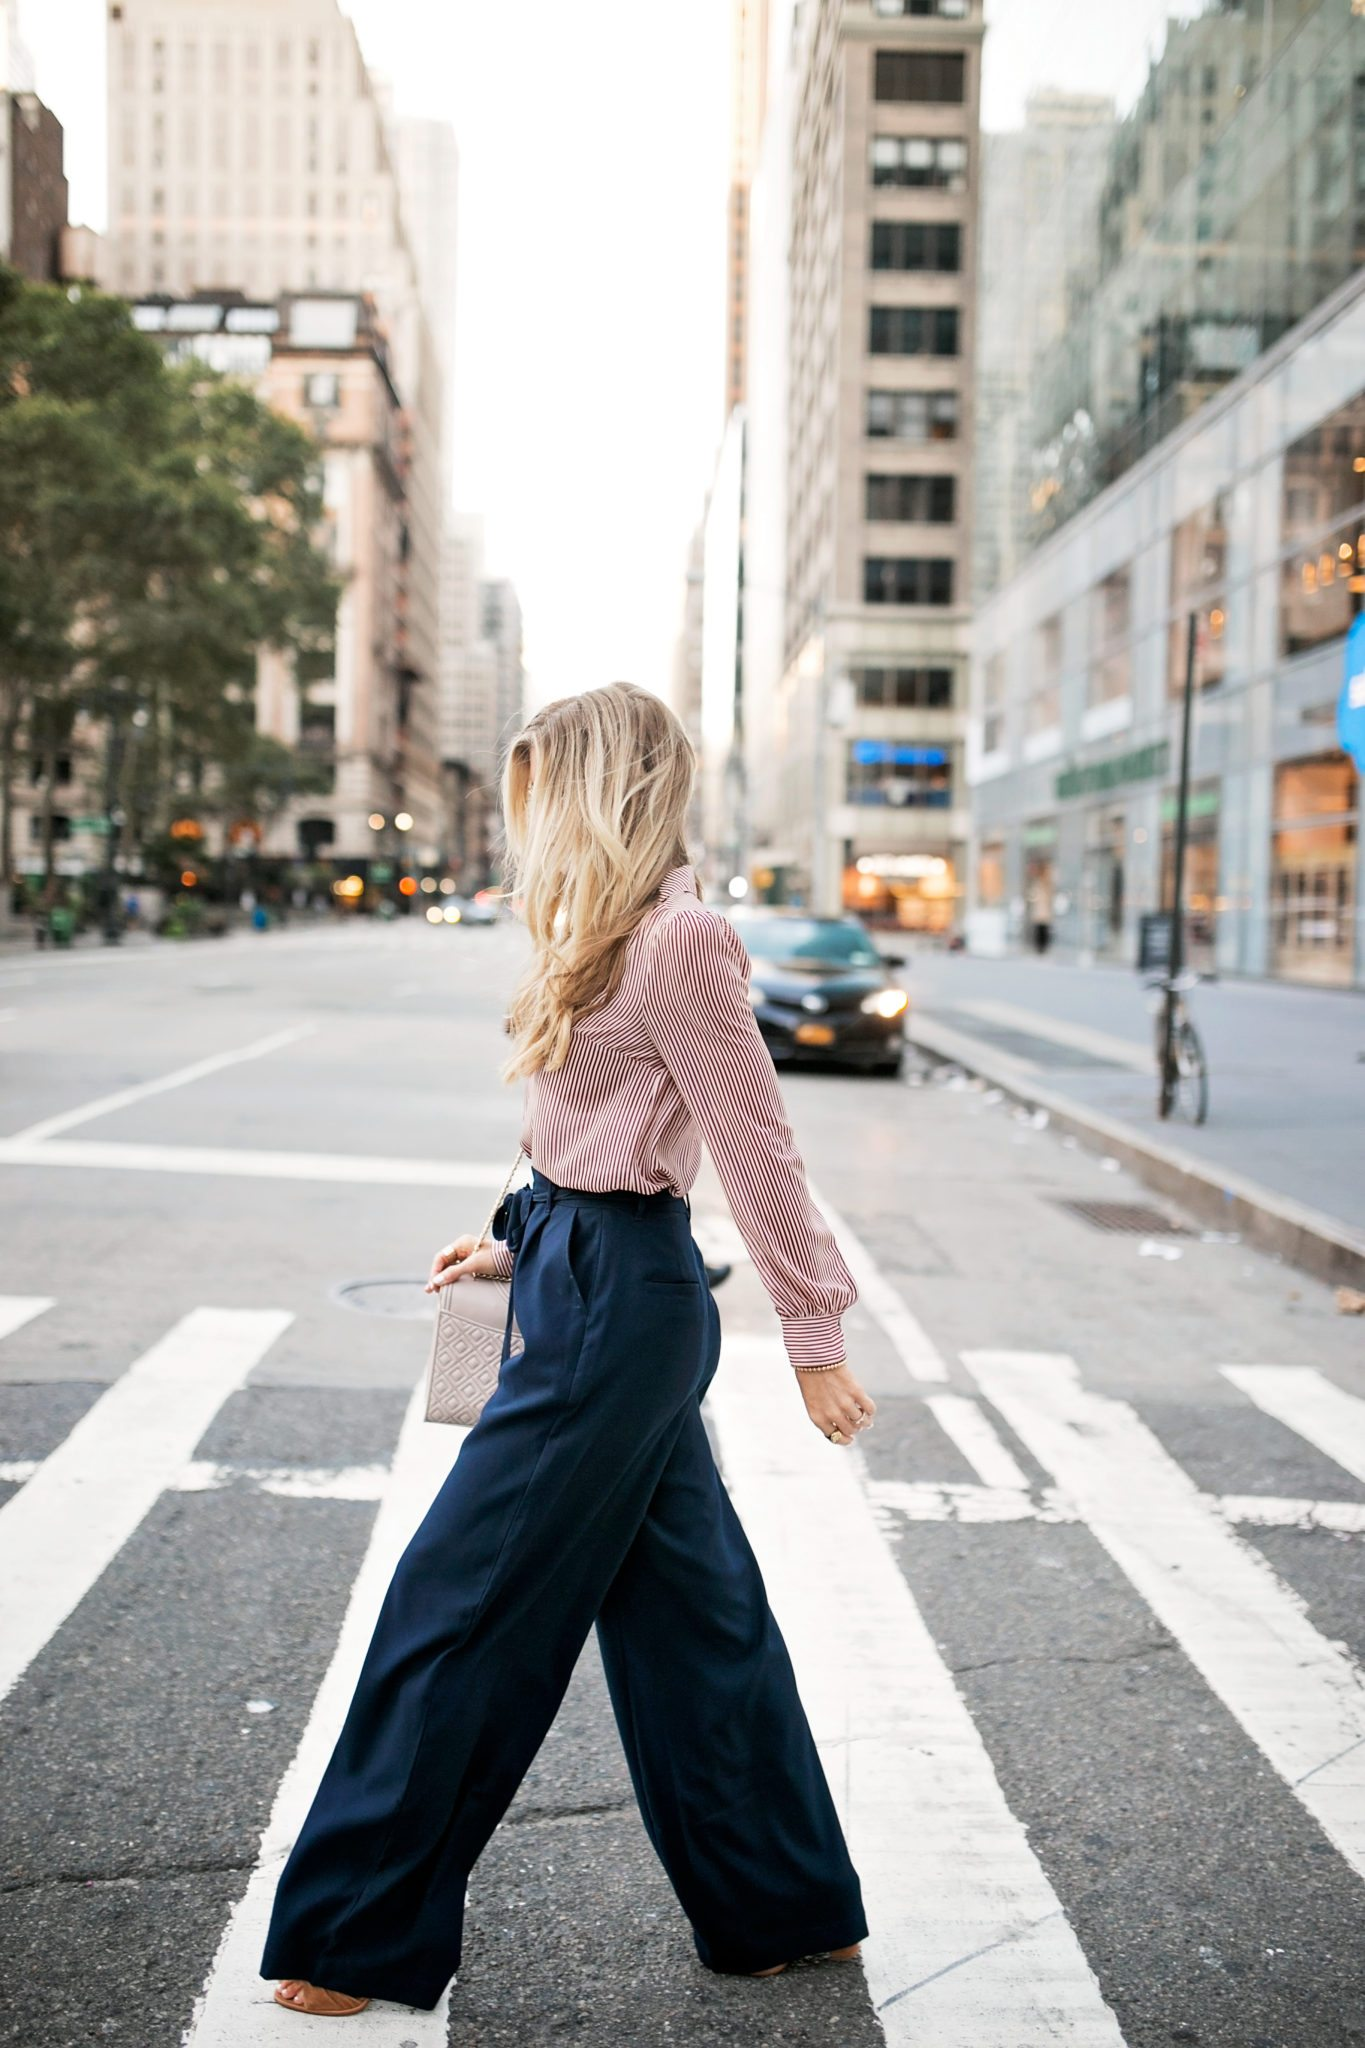 NYFW LOOK 2: THE TROUSER TREND